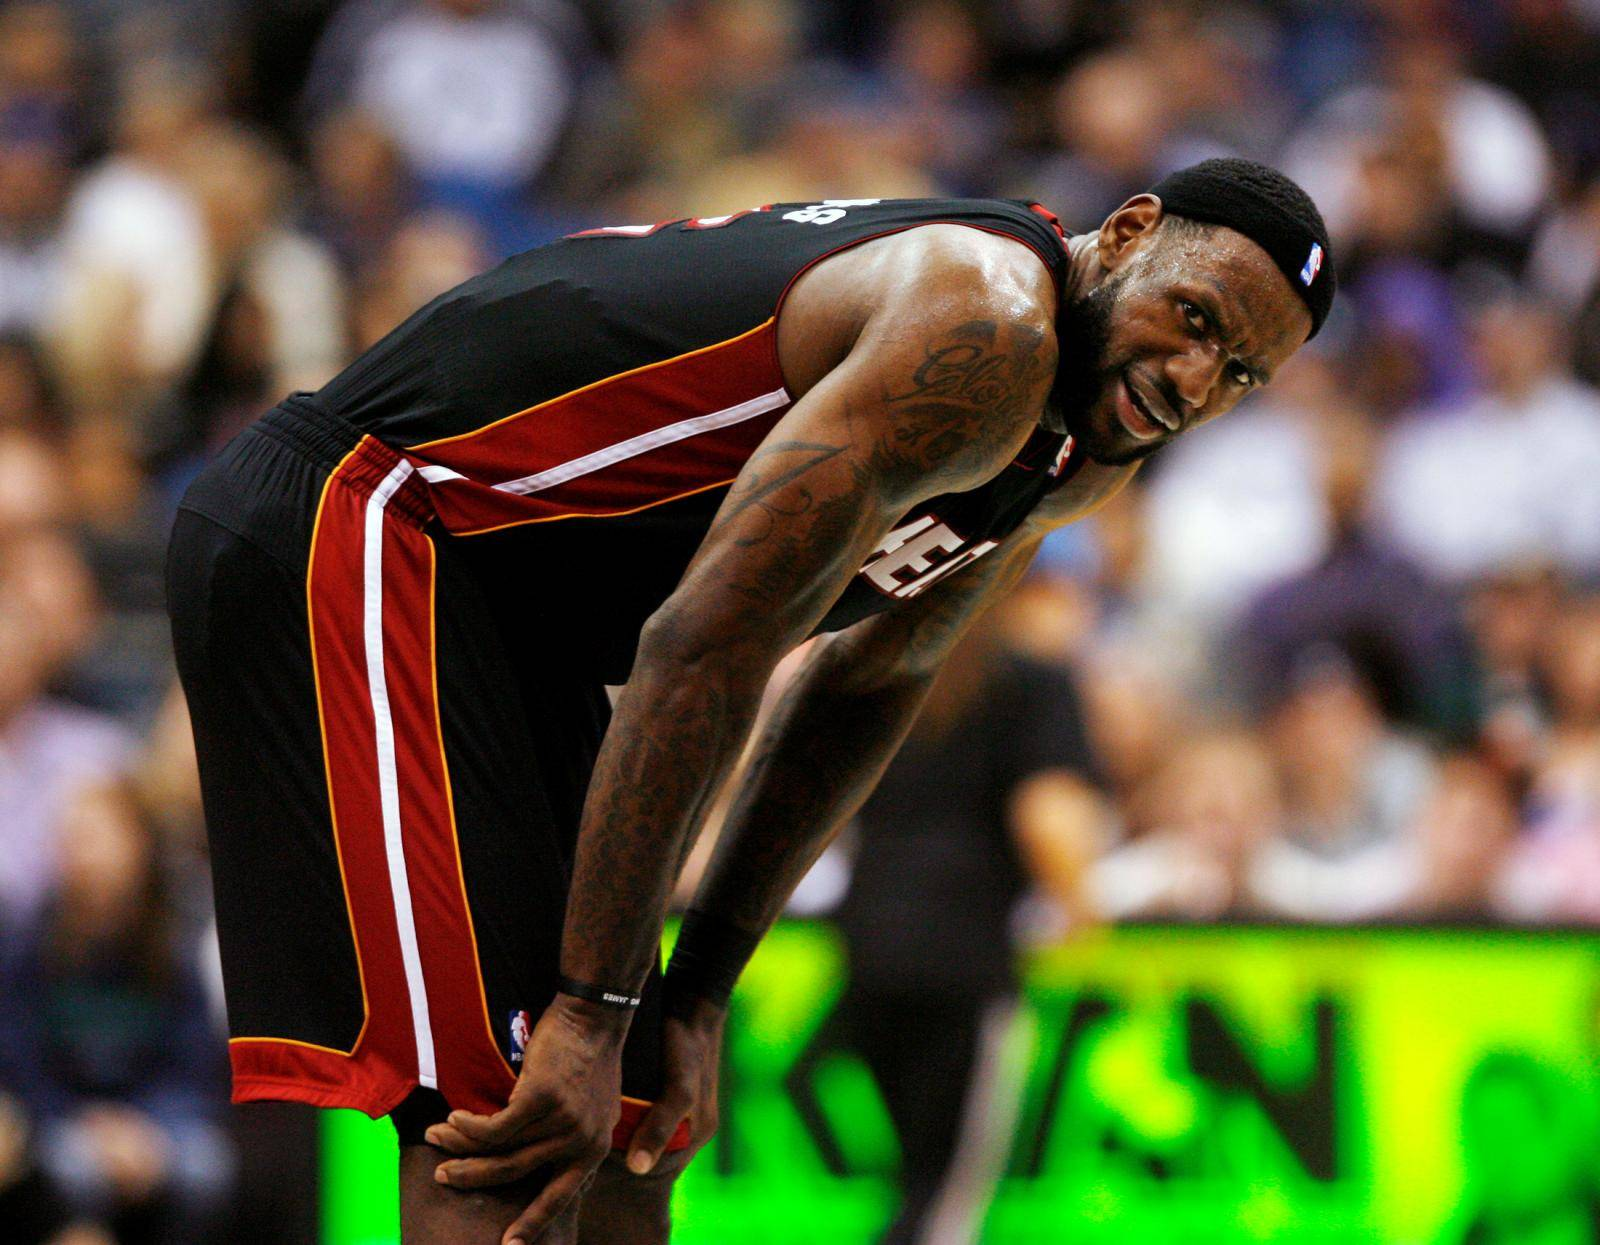 FILE PHOTO: Miami Heat forward LeBron James stands at midcourt during his side's 111-92 victory against the Minnesota Timberwolves at the Target Center in Minneapolis, Minnesota.